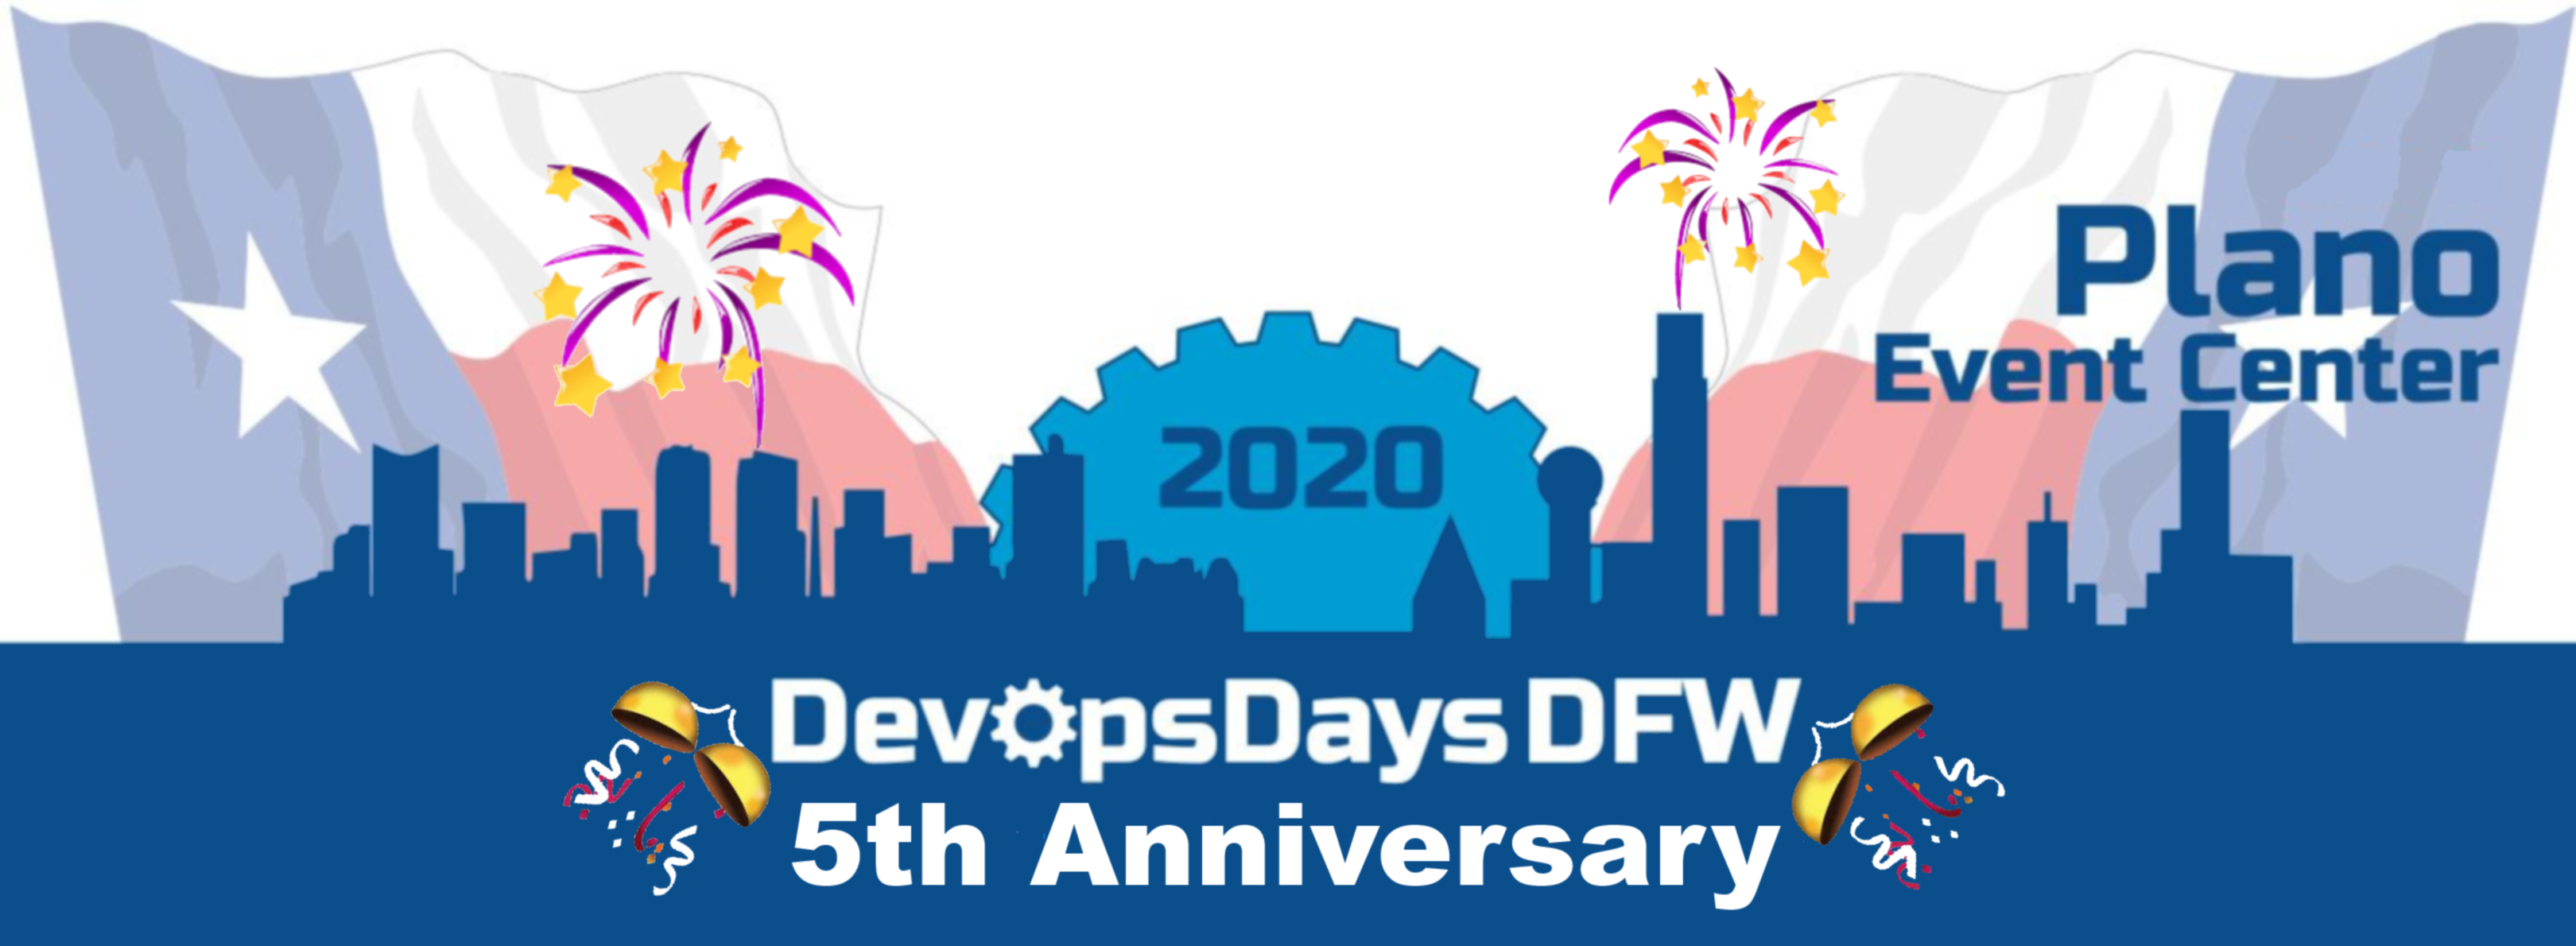 devopsdays Dallas 2020